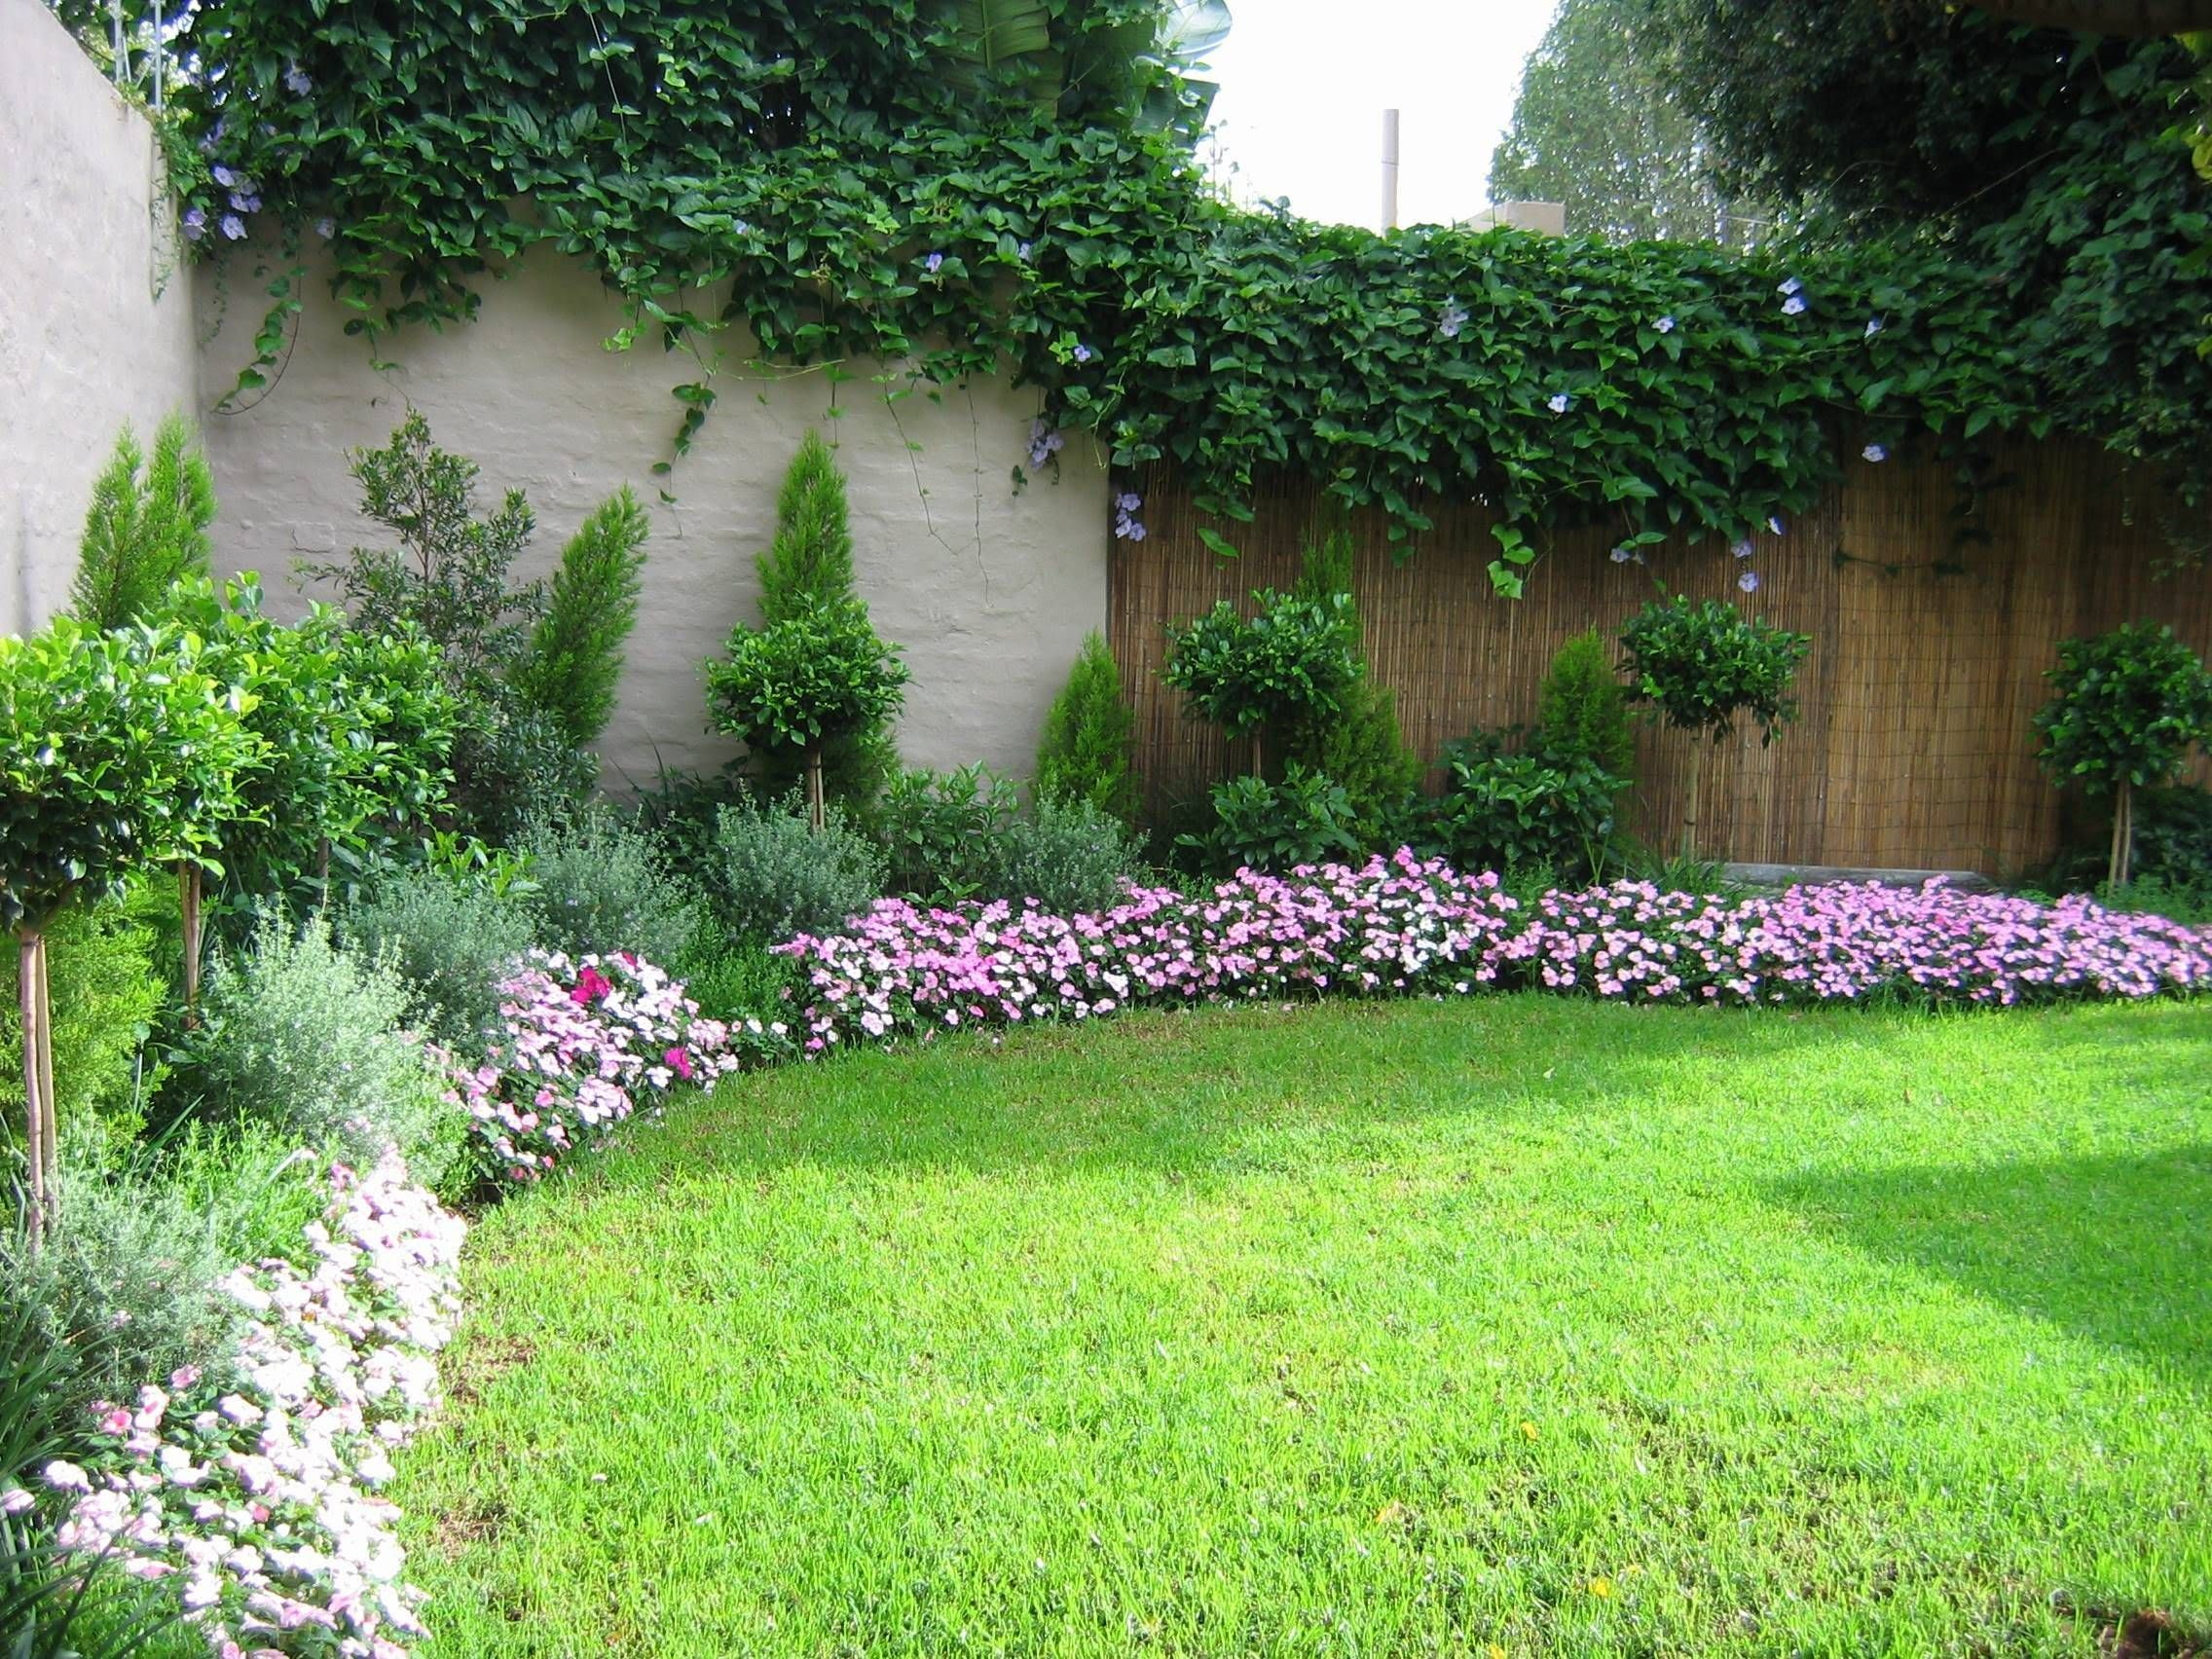 Rsultats de recherche dimages pour short bushes for front of